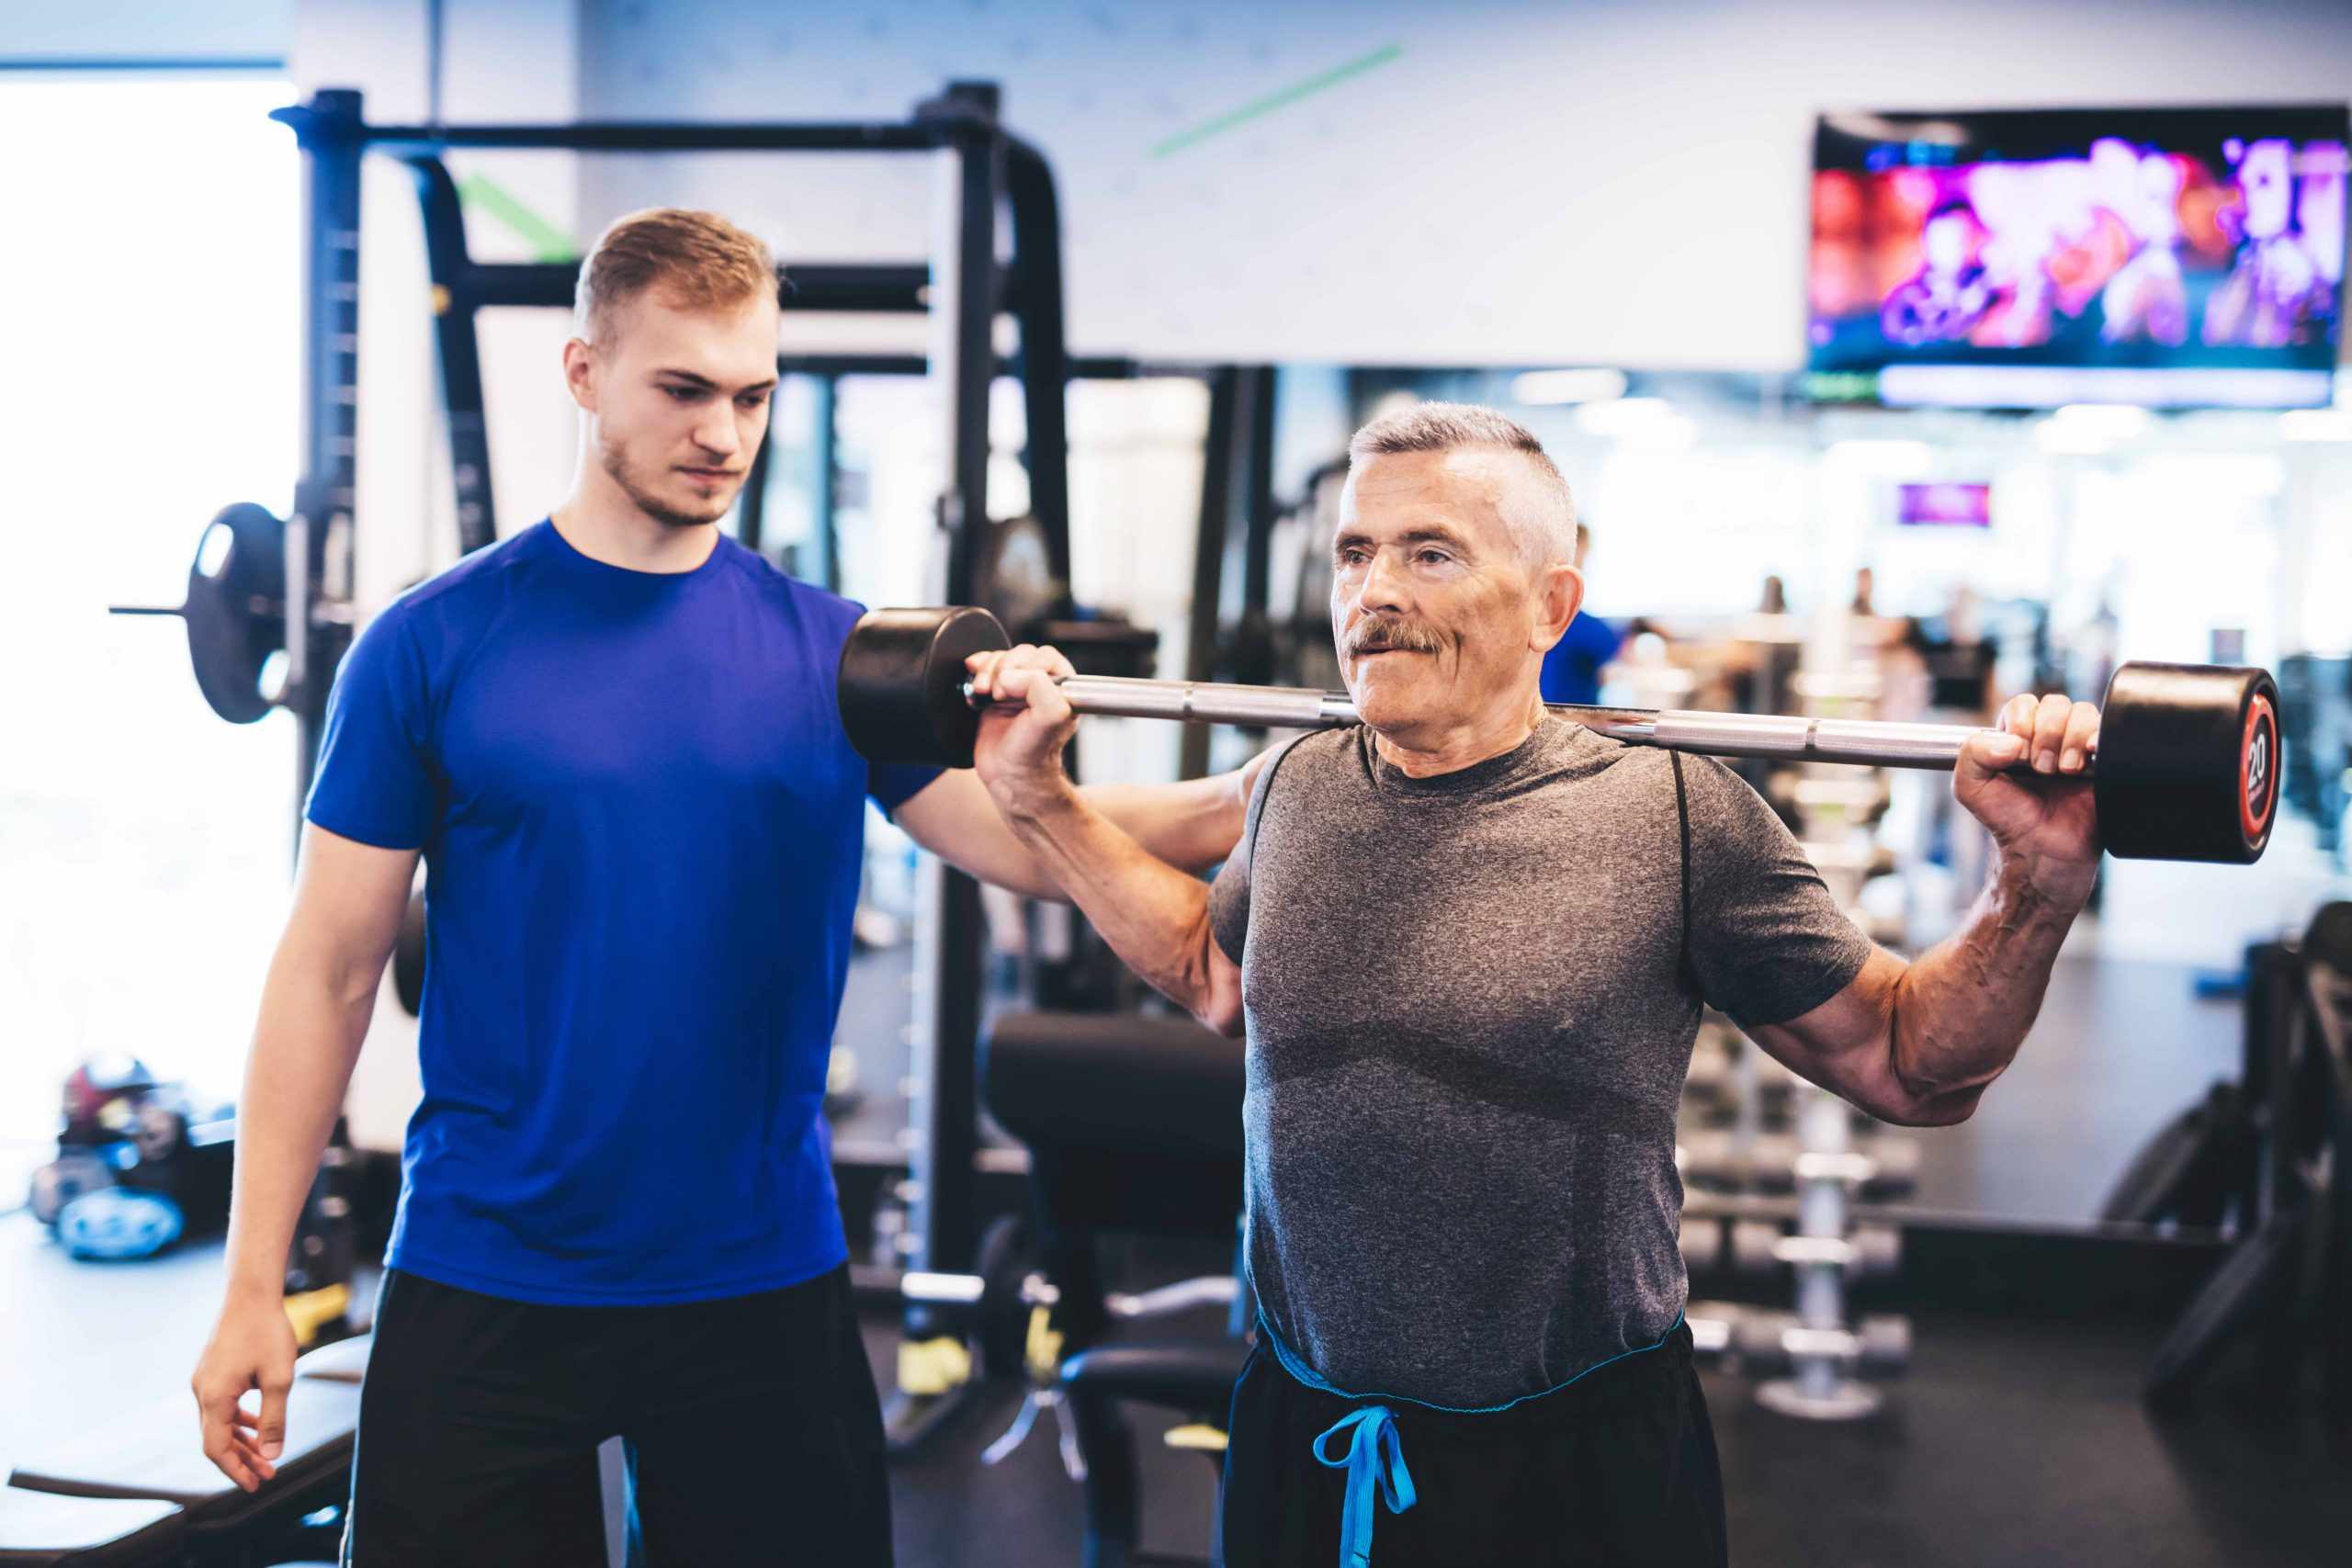 Older man and personal trainer at the gym. Lifting weights. Indoor workout.